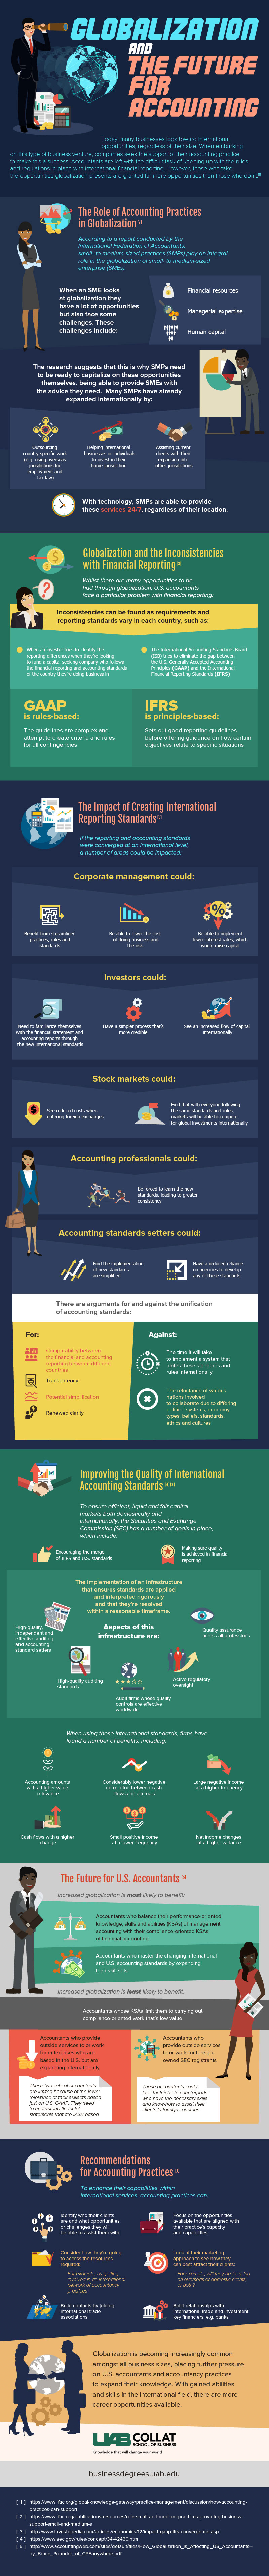 An infographic about the impact of globalization on accounting by UAB Collat School of Business.